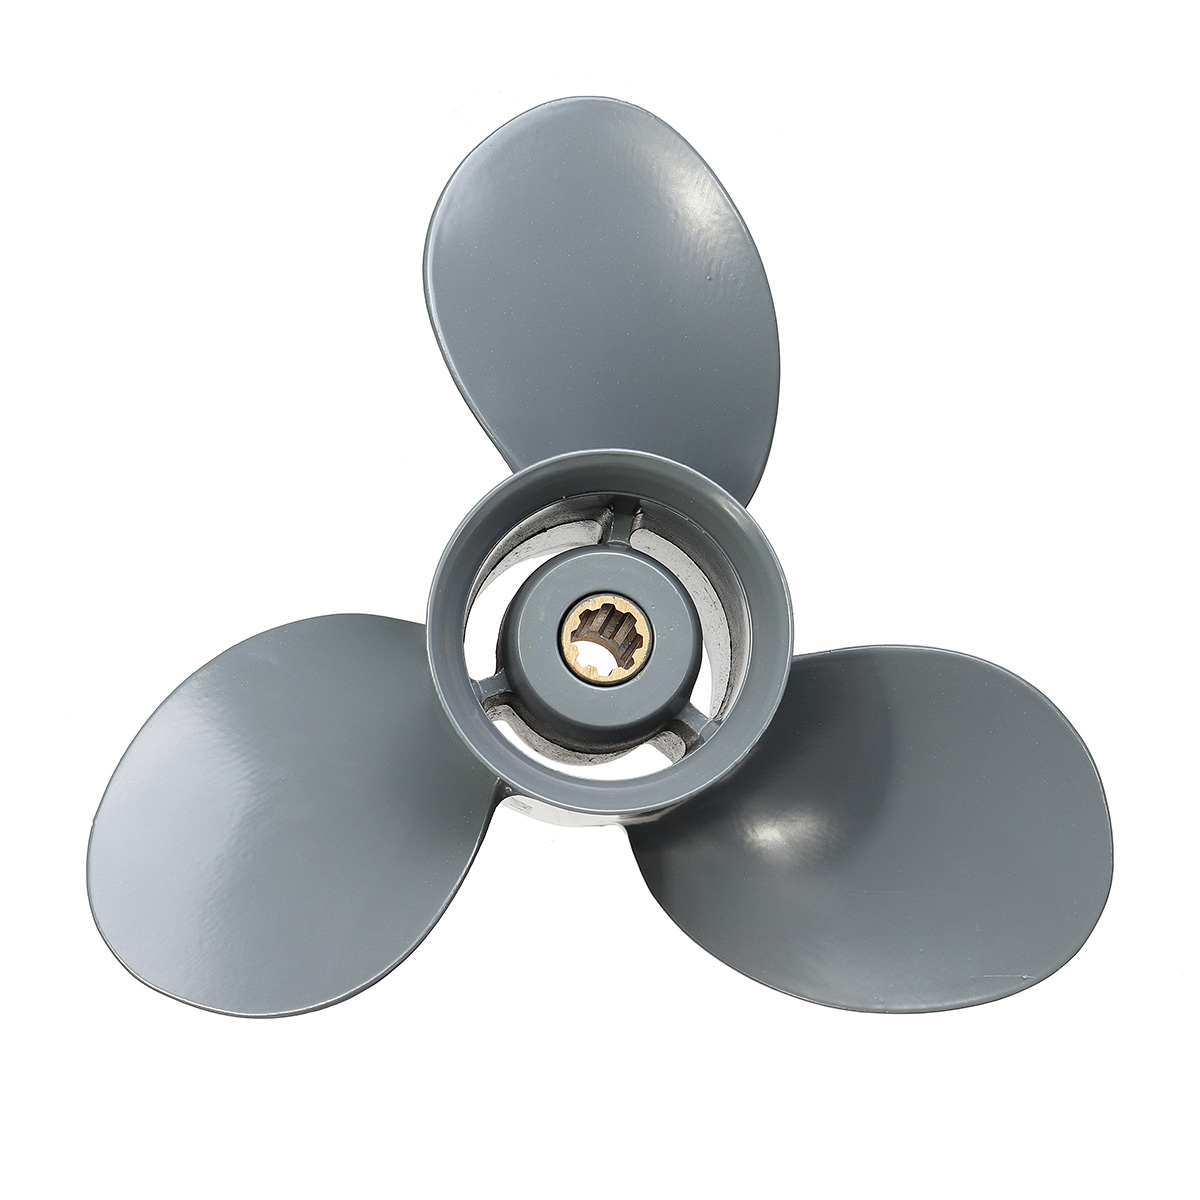 9 1/4 x 8 Aluminum Alloy Outboard Propeller For Honda 8-20HP 58130-ZV4-008AH